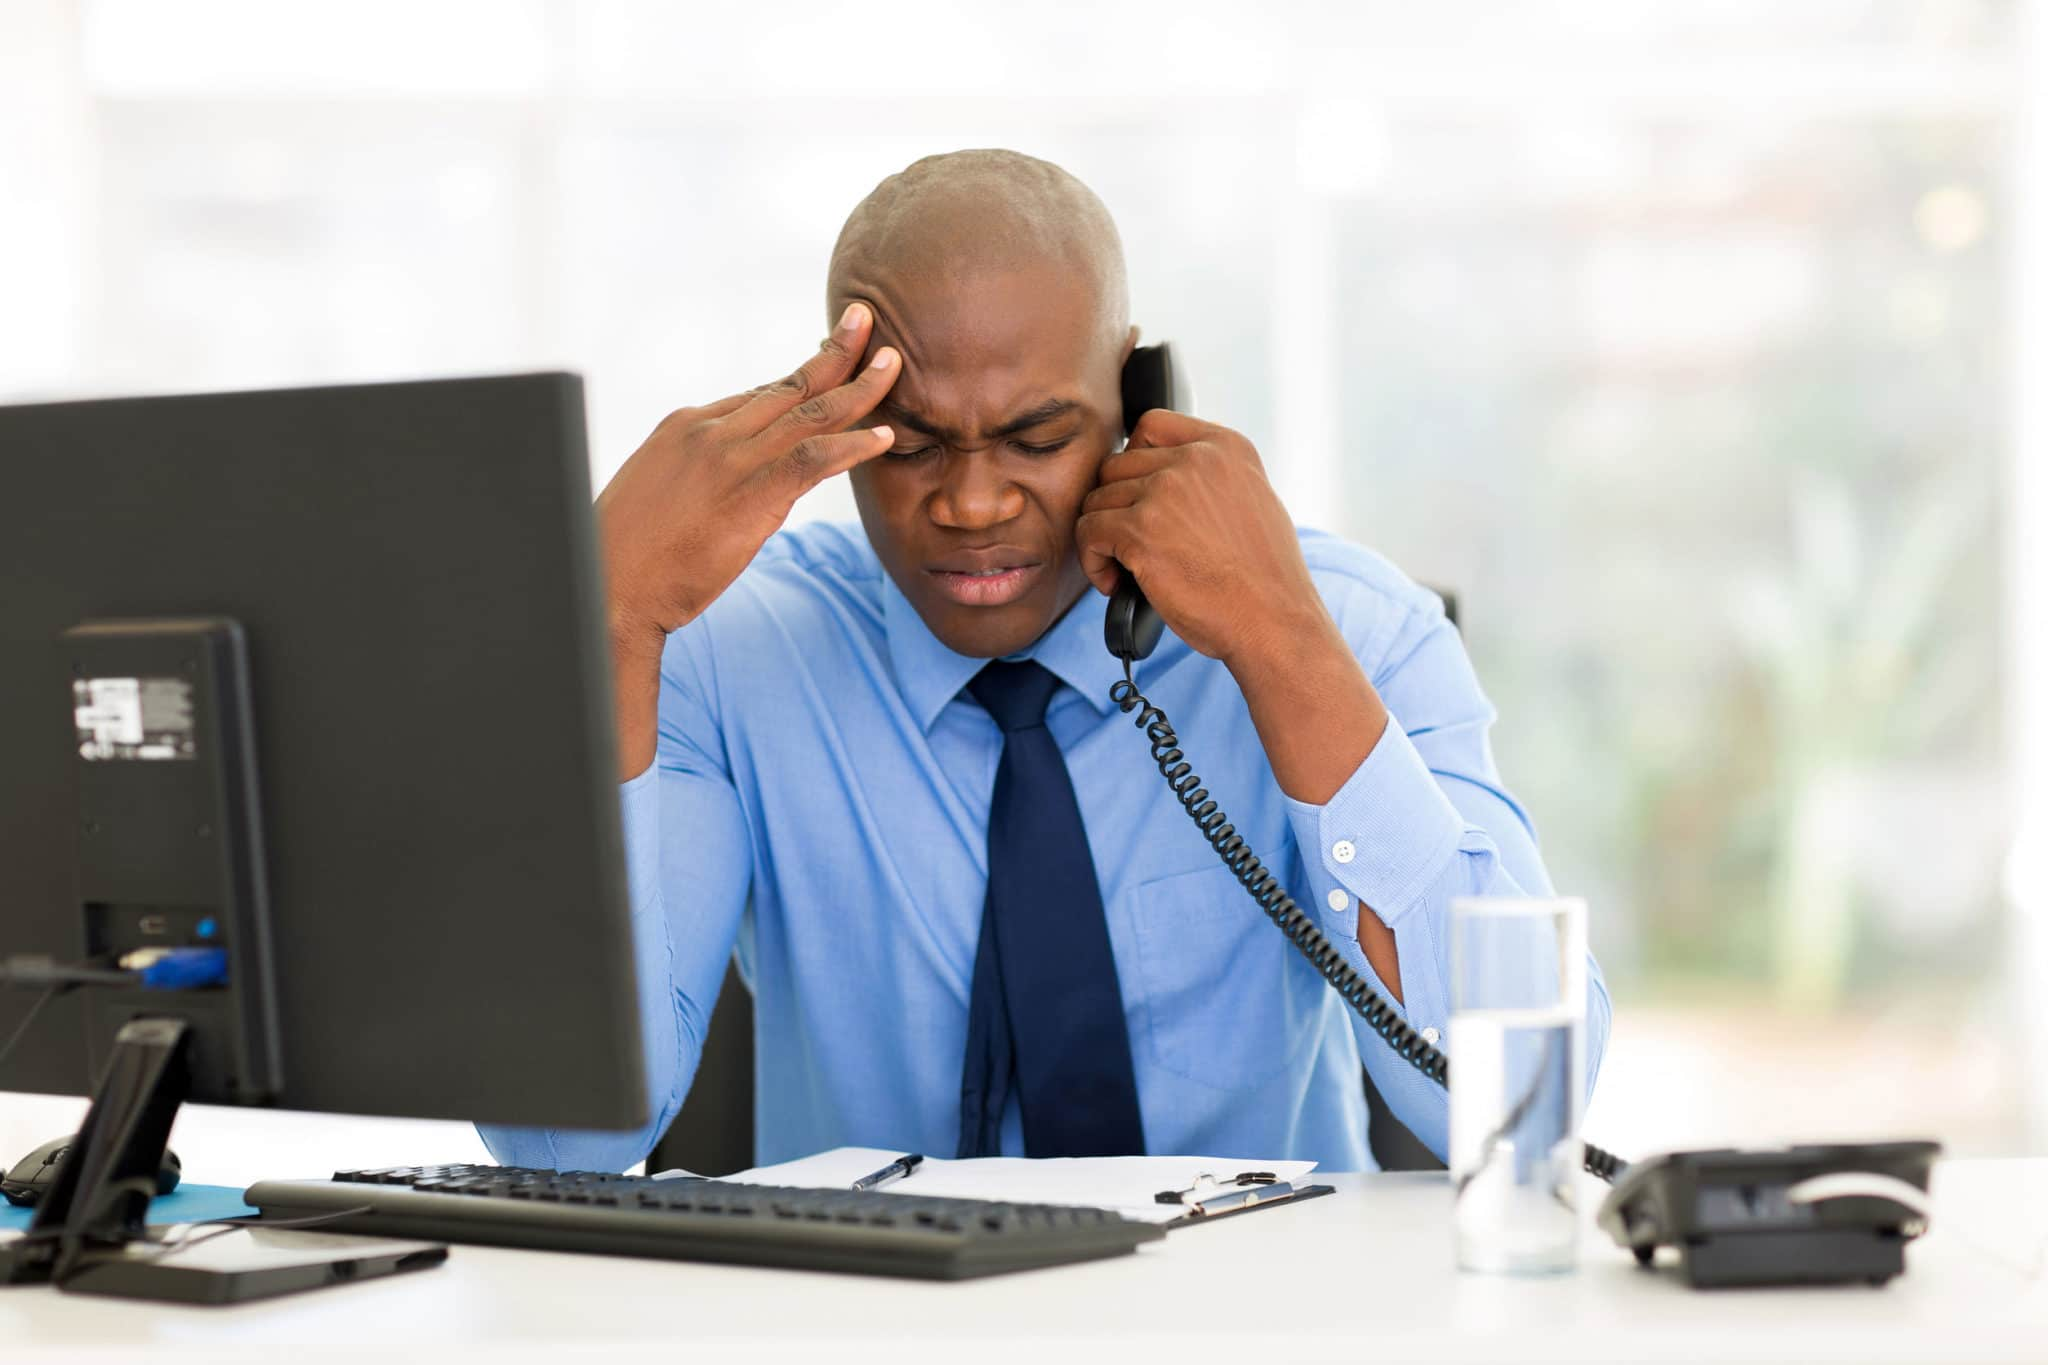 Texas Ex Calling? You Could Face a Protective Order Violation